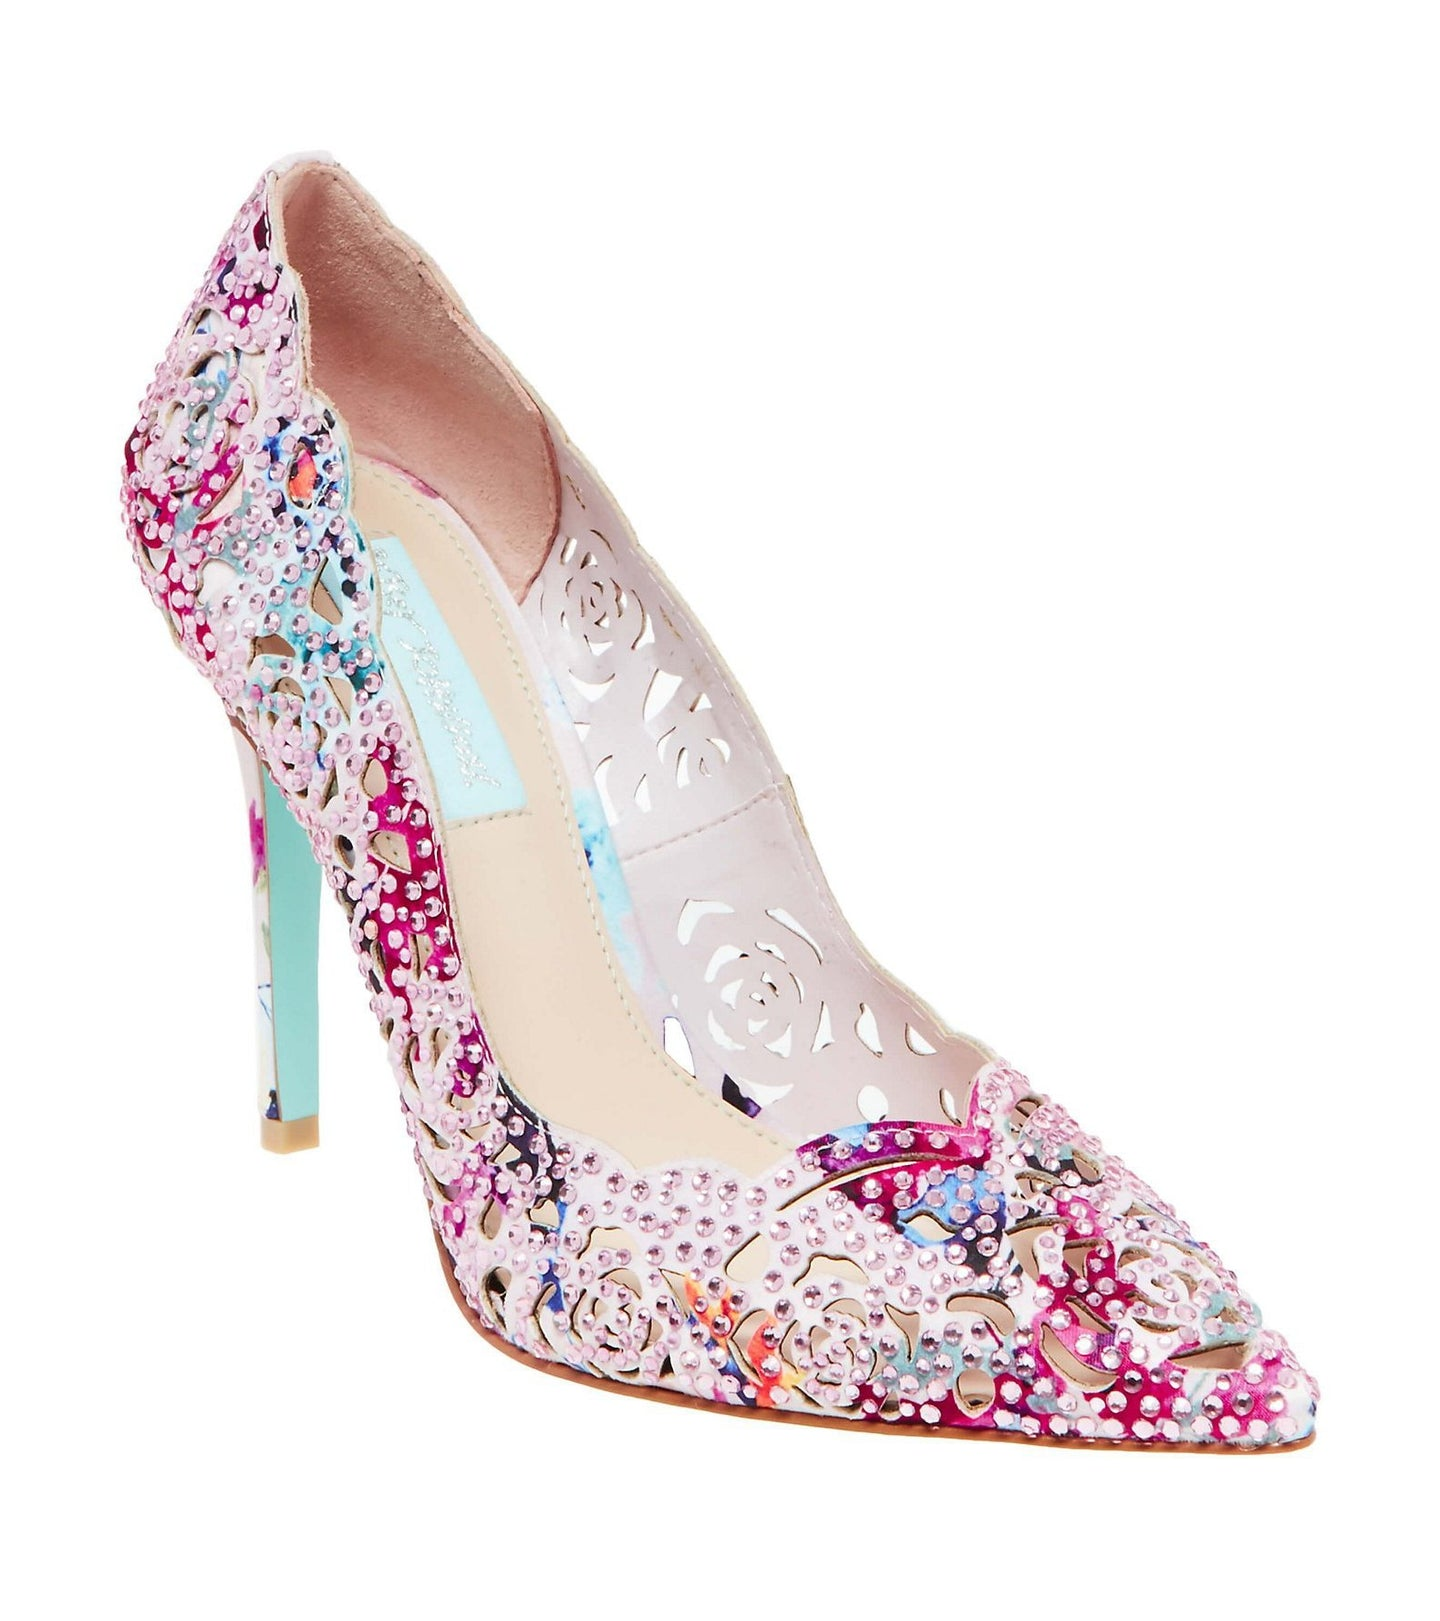 SB-ELSA BLUSH MULTI - SHOES - Betsey Johnson